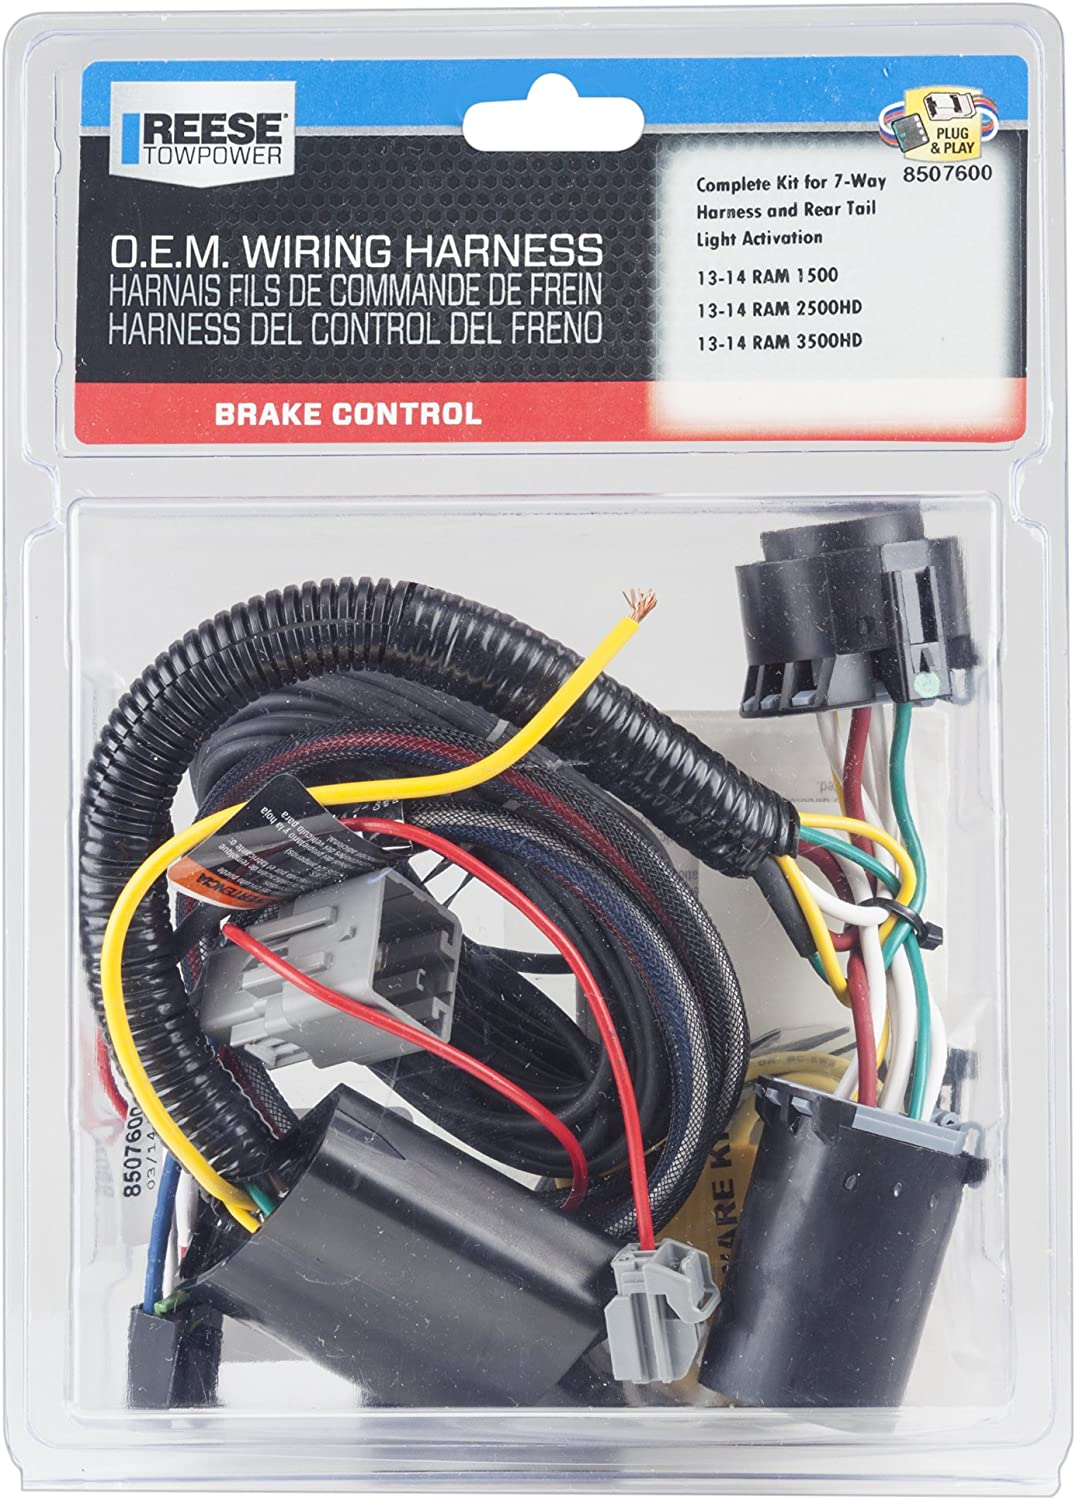 Amazon.com: reese towpower 8507600 Control del freno ... on reese 5th wheel hitch, reese hitch accessories, reese cabinets, reese receivers,